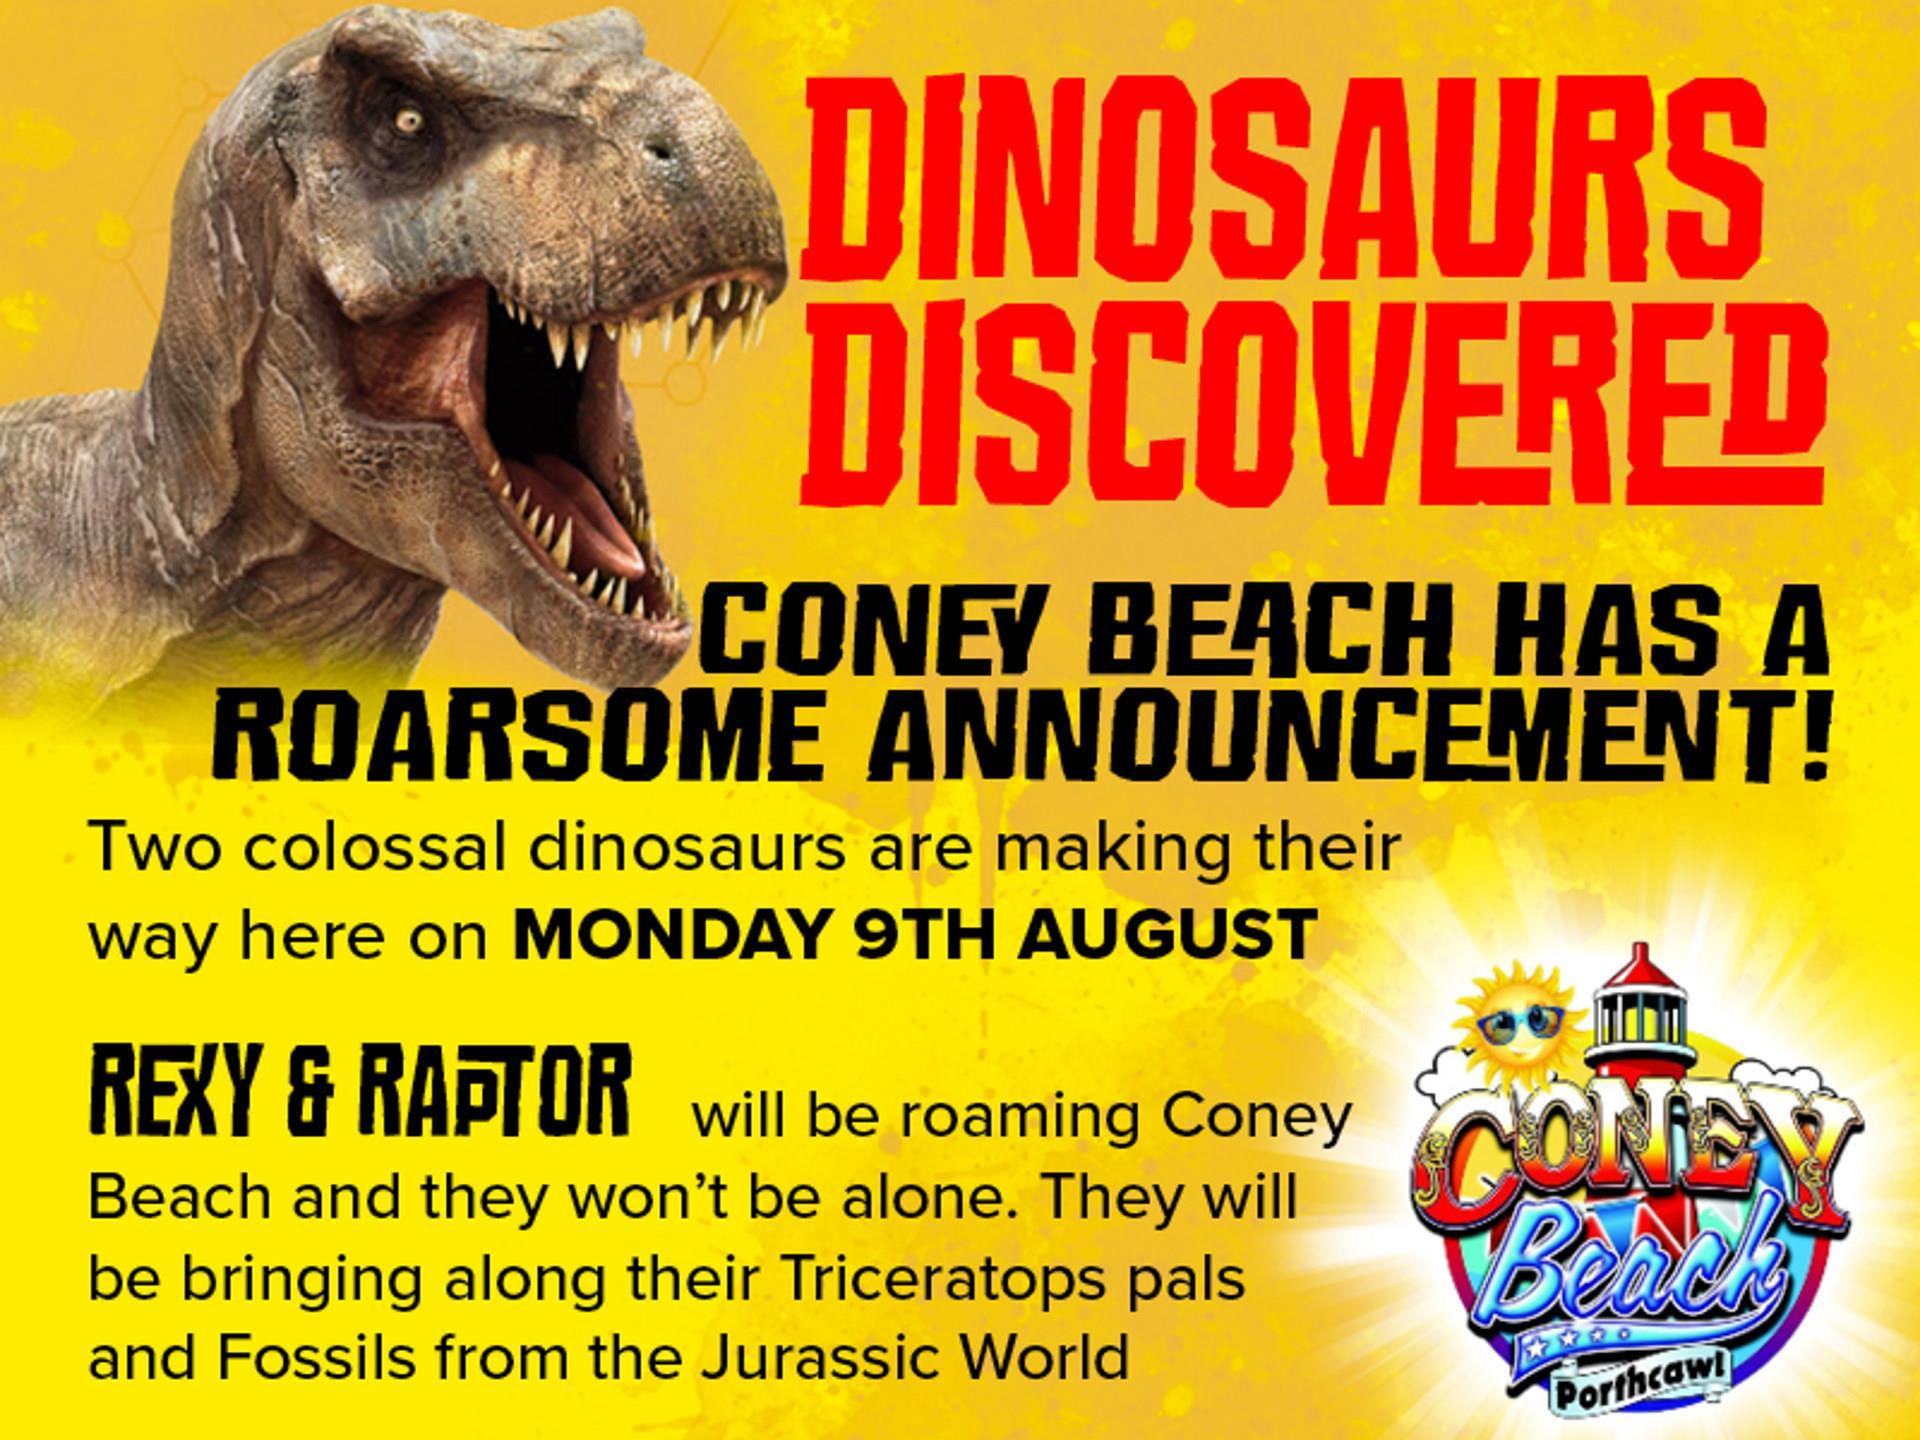 Dinosaurs Discovered at Coney Beach at Coney Beach Pleasure Park